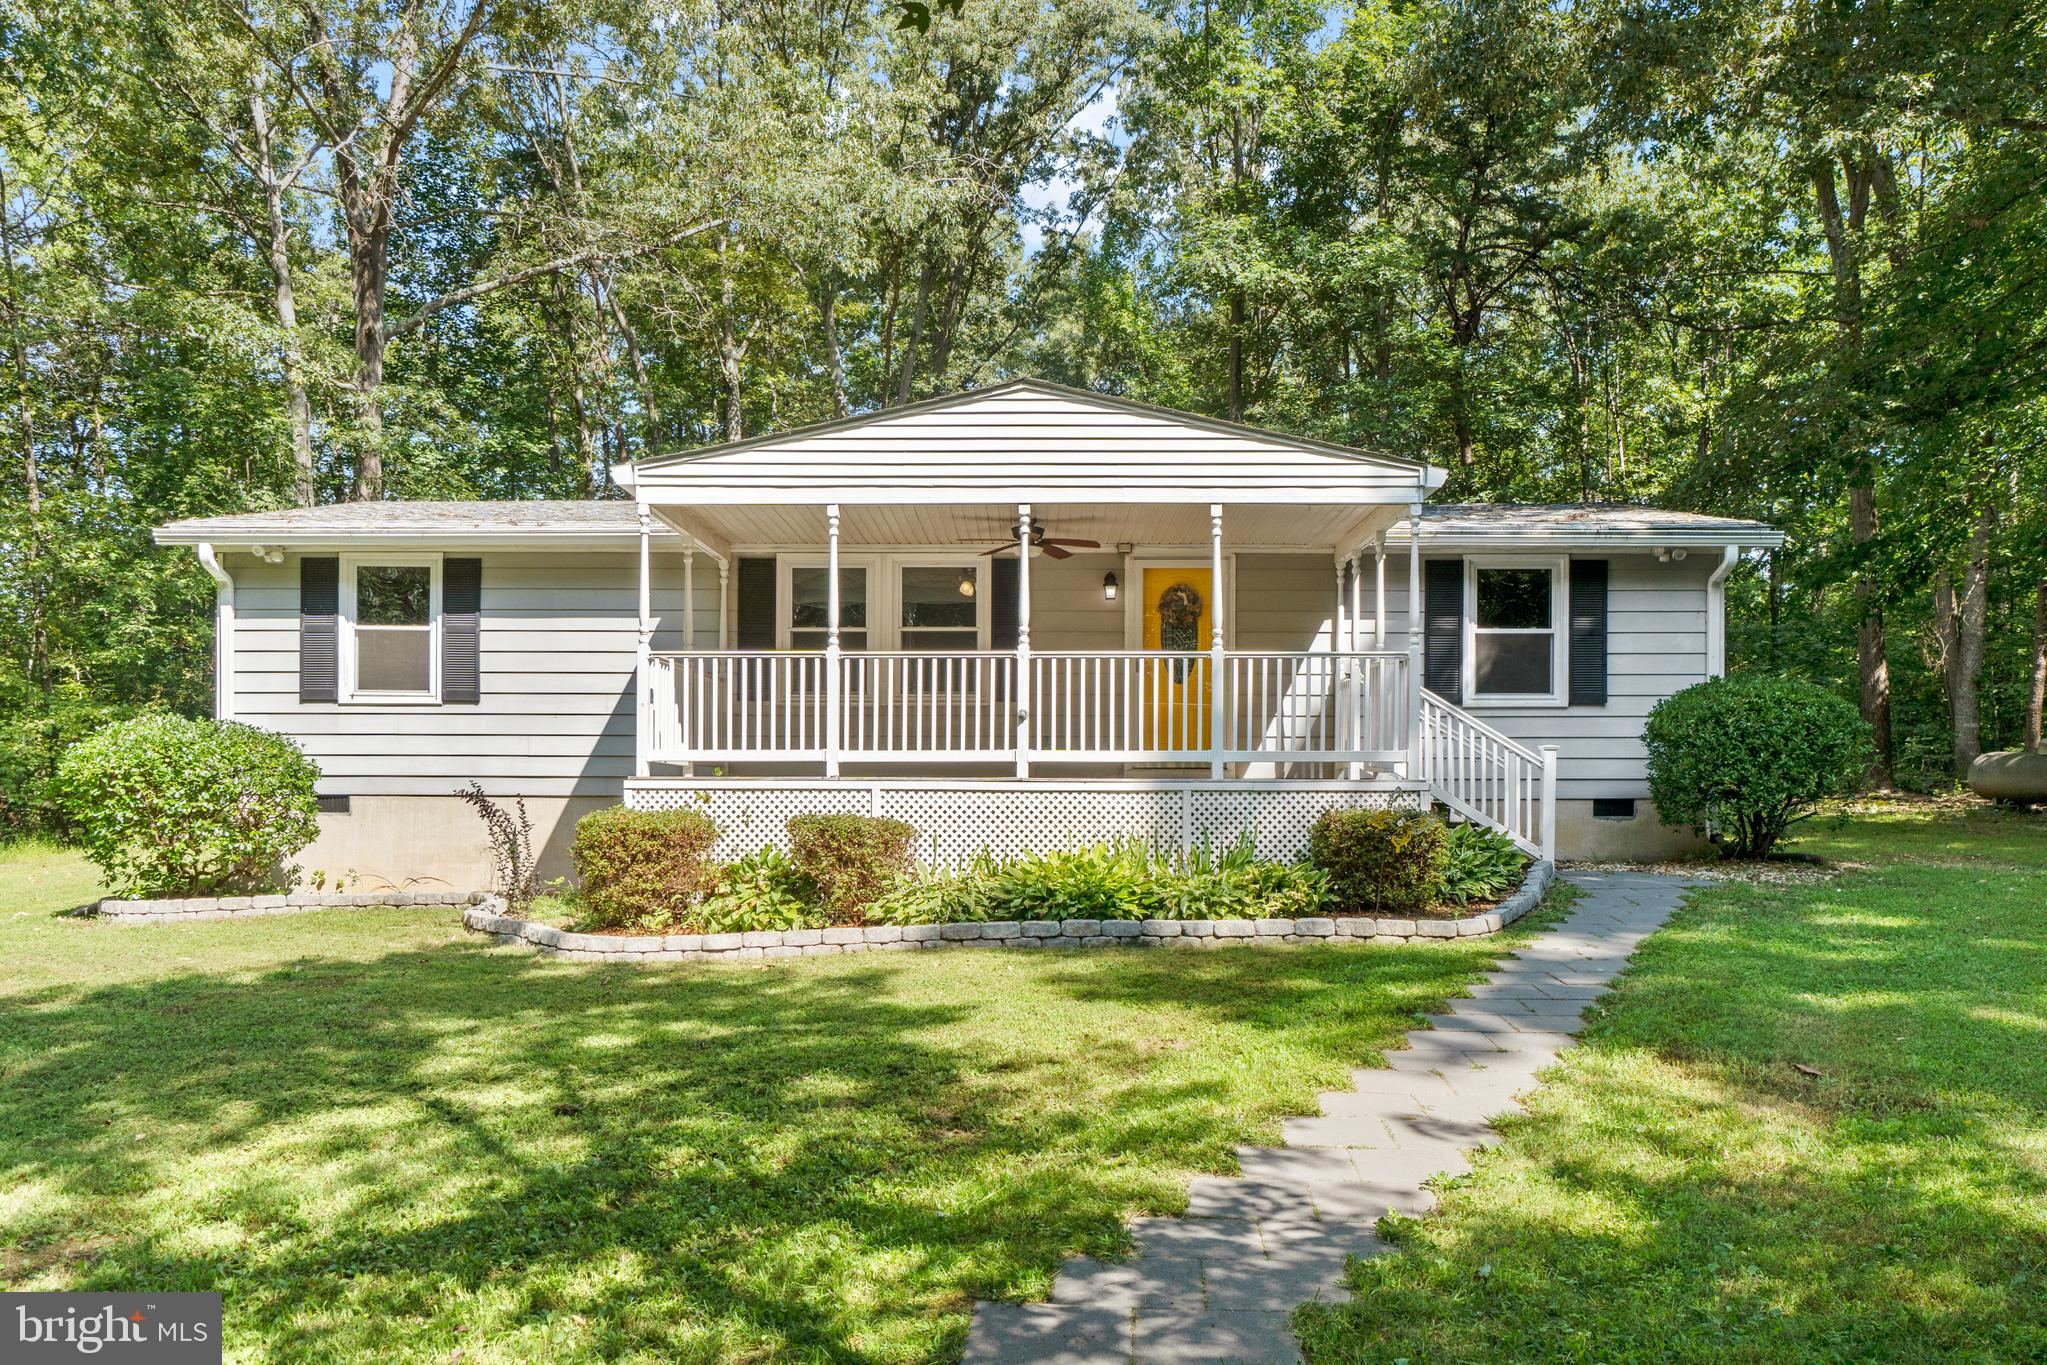 This adorable one level home is seated on just over 6 acres of land in a fantastic location! Just minutes from Route 3, Central Park, and I95. Far enough away to enjoy the quiet with a cup of coffee on the extra large front porch!